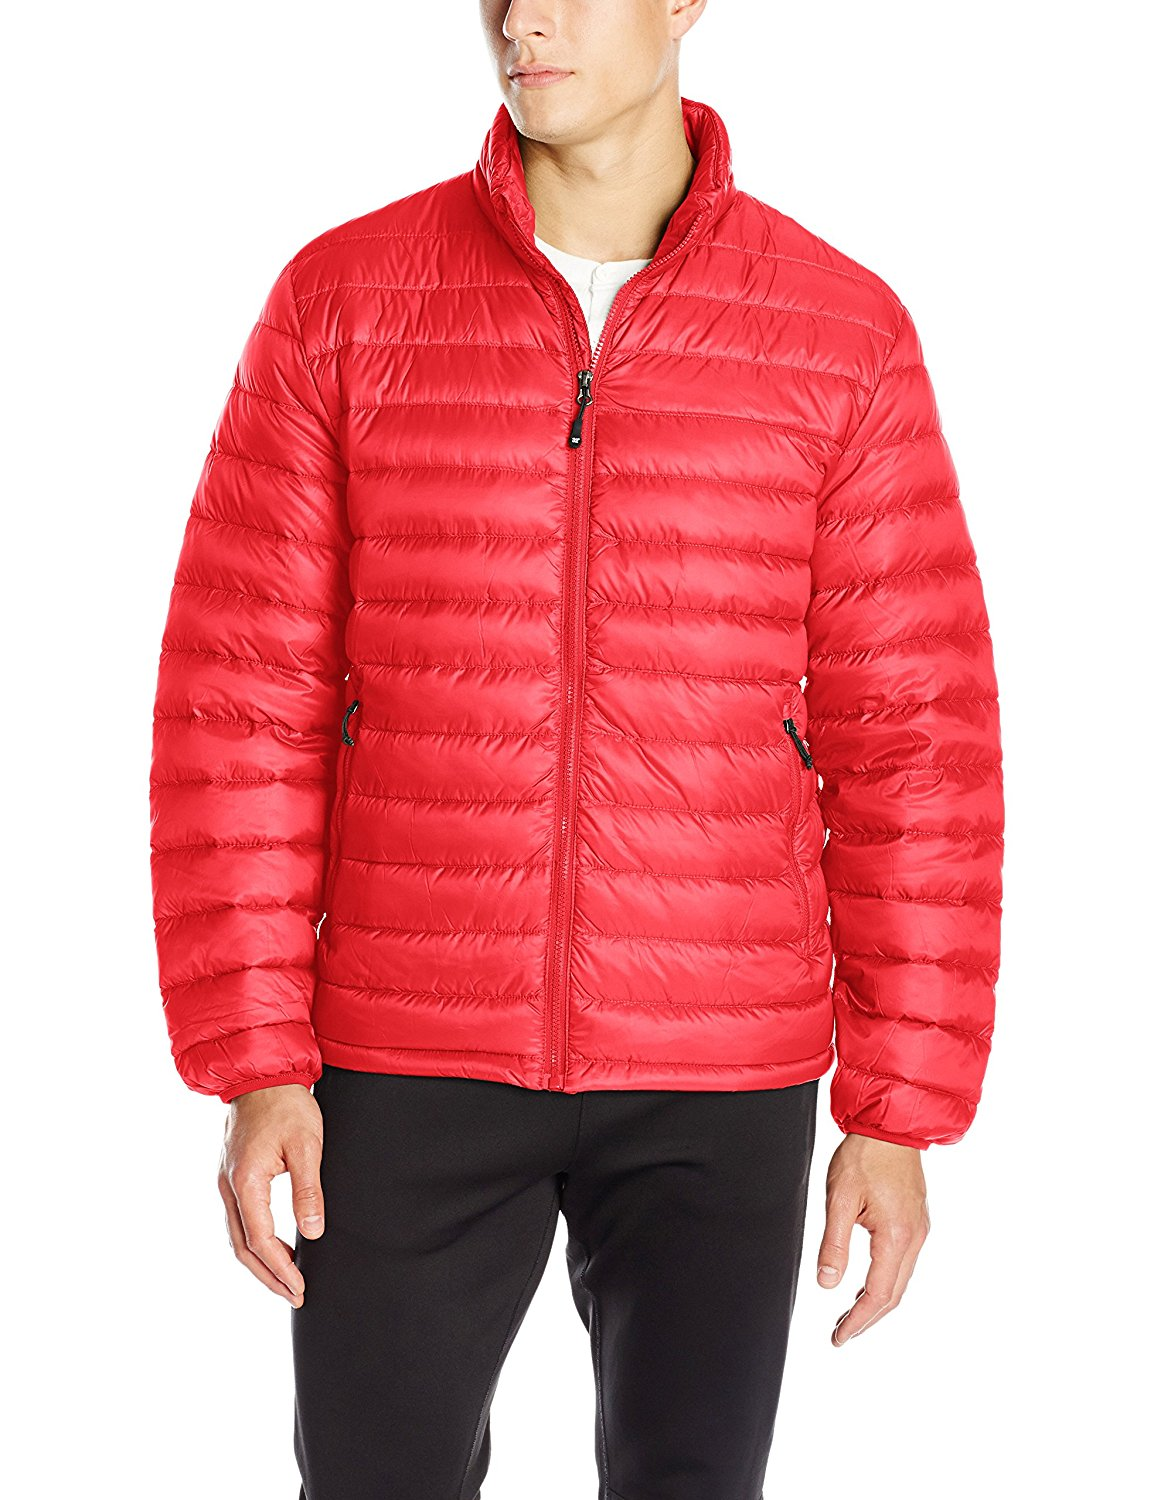 32 Degrees Men's Red Nano Light Packable Jacket, Size M